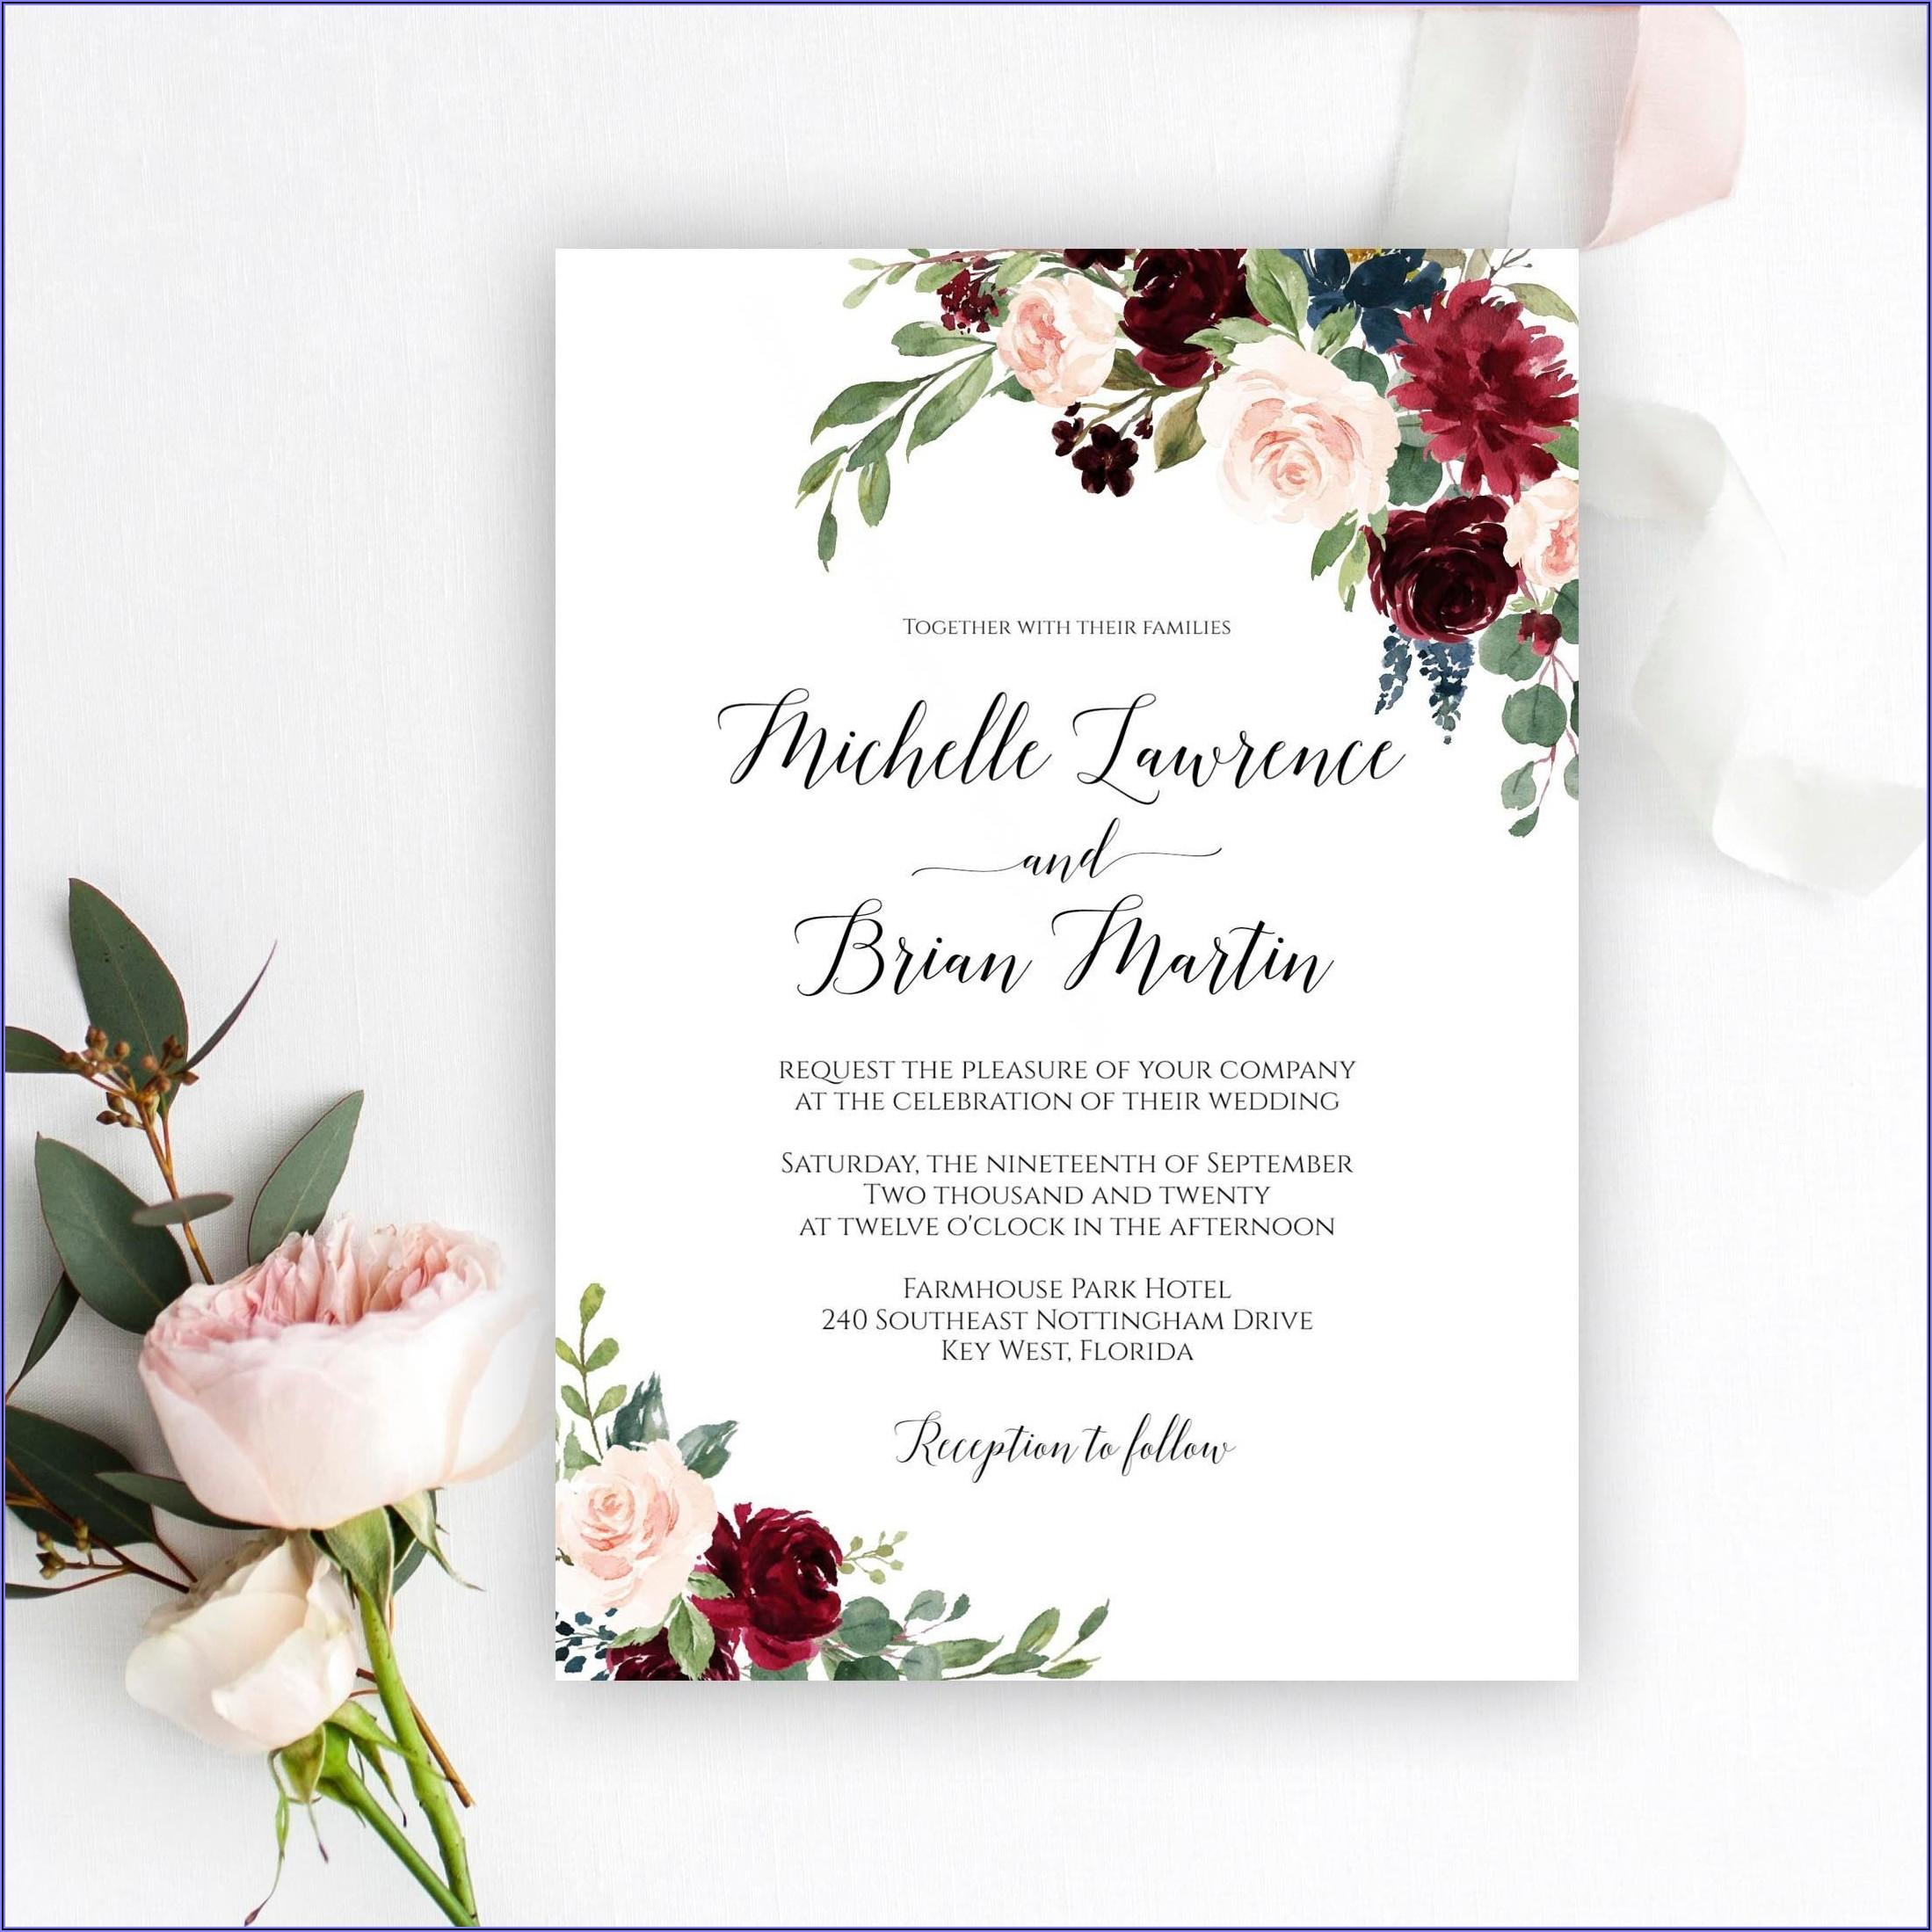 Wedding Invitation Card Templates Free Download